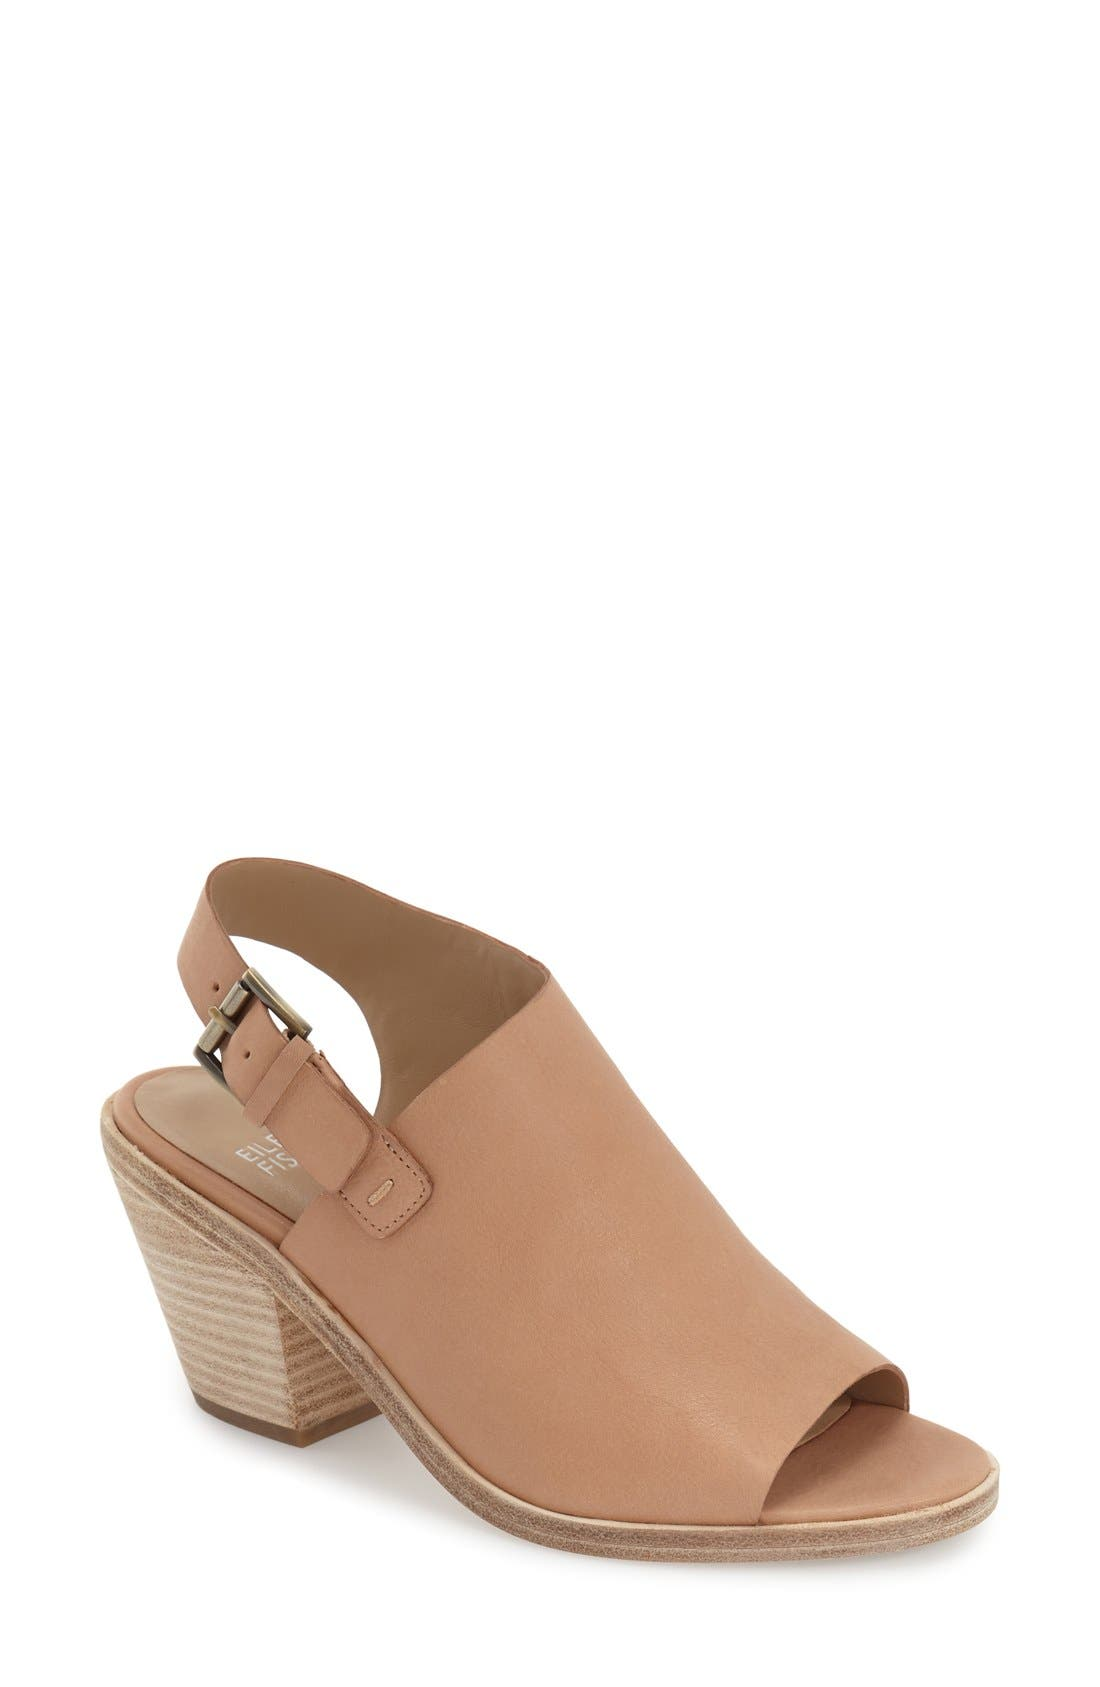 Alternate Image 1 Selected - Eileen Fisher 'Glance' Sandal (Women)